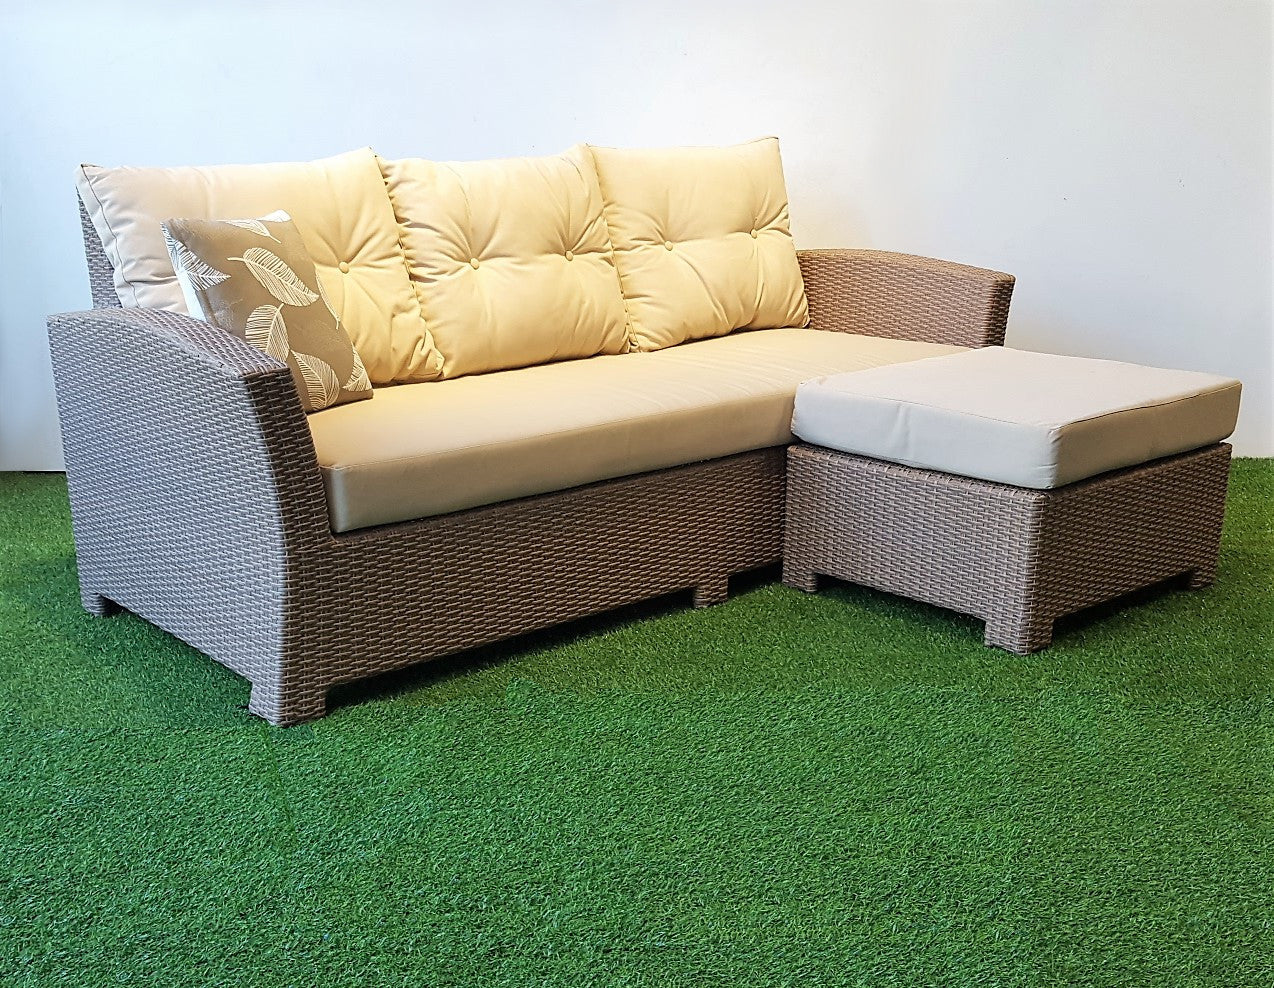 Miami Outdoor Sofa And Ottoman Set Hemma Online Furniture Store